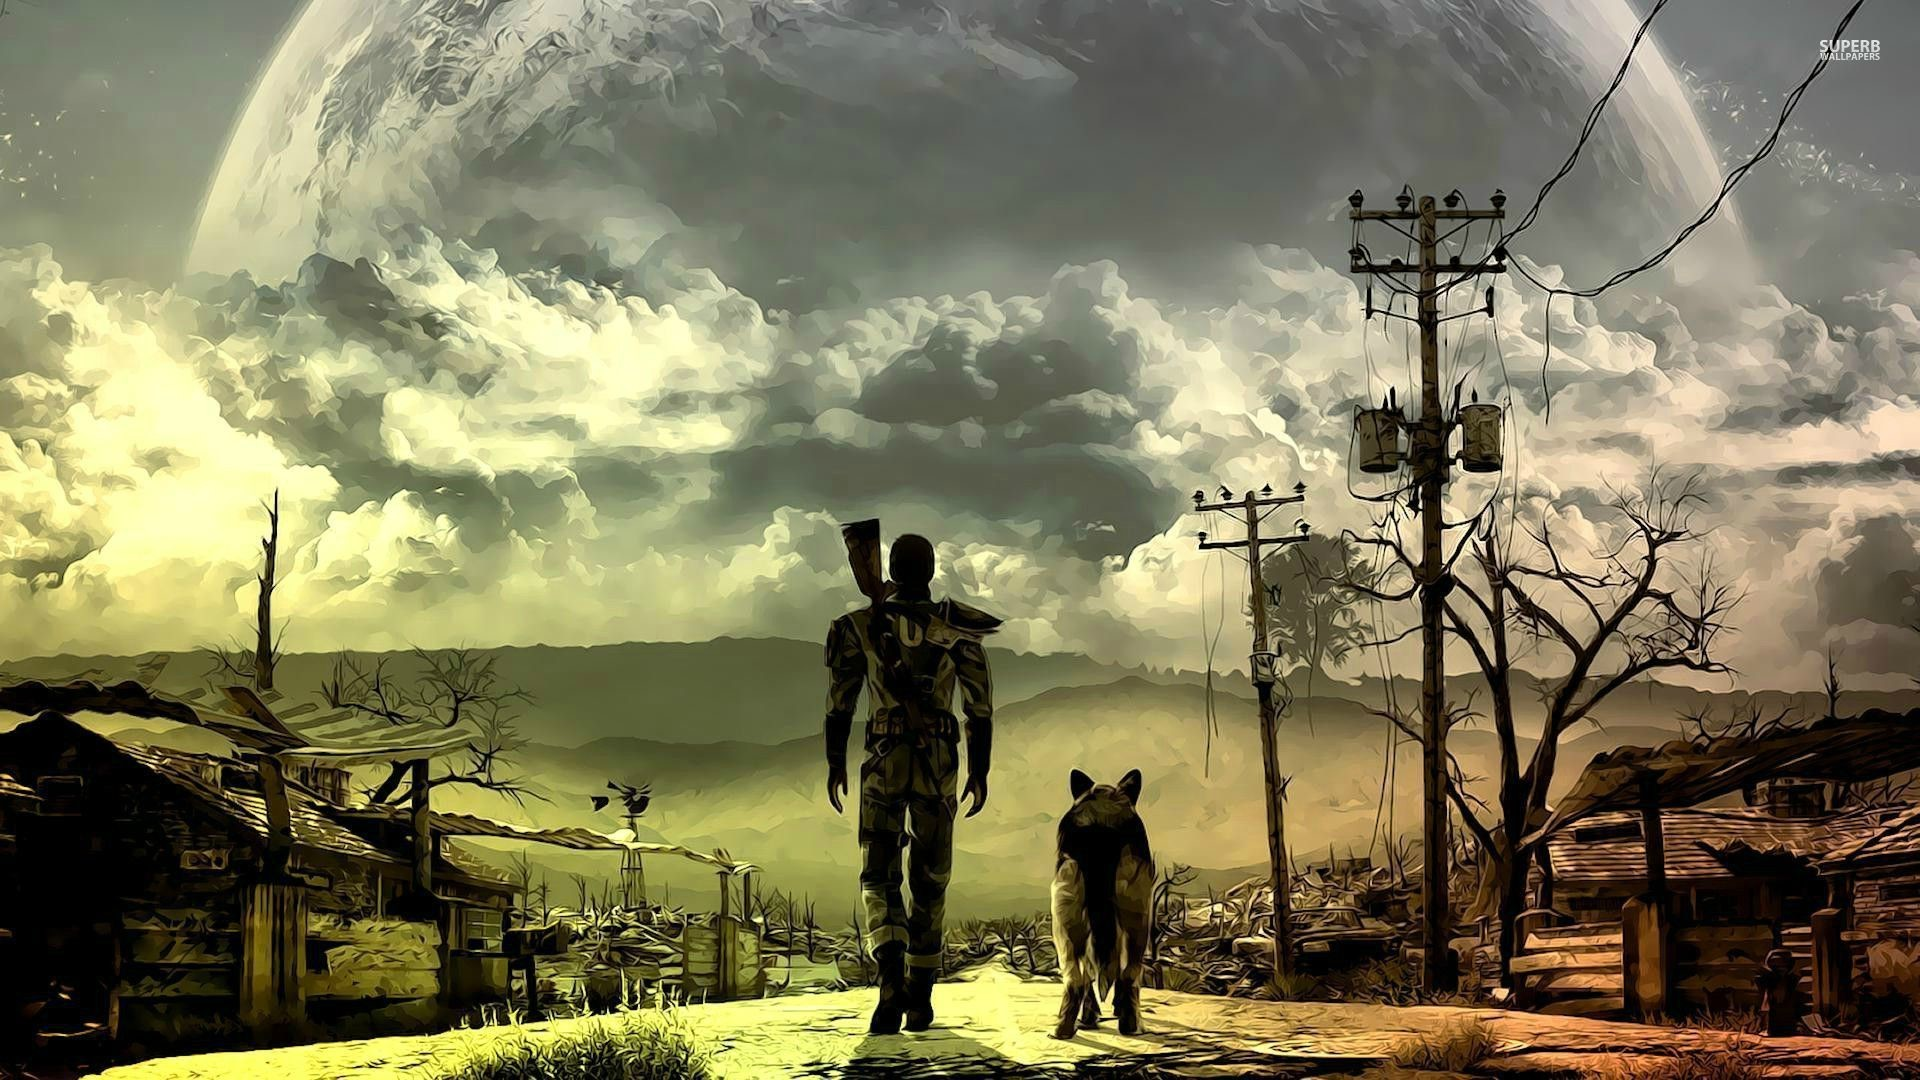 Fallout 3 wallpaper hd 81 images 1920x1080 fallout hd wallpapers backgrounds wallpaper hd wallpapers pinterest hd wallpaper wallpaper thecheapjerseys Gallery